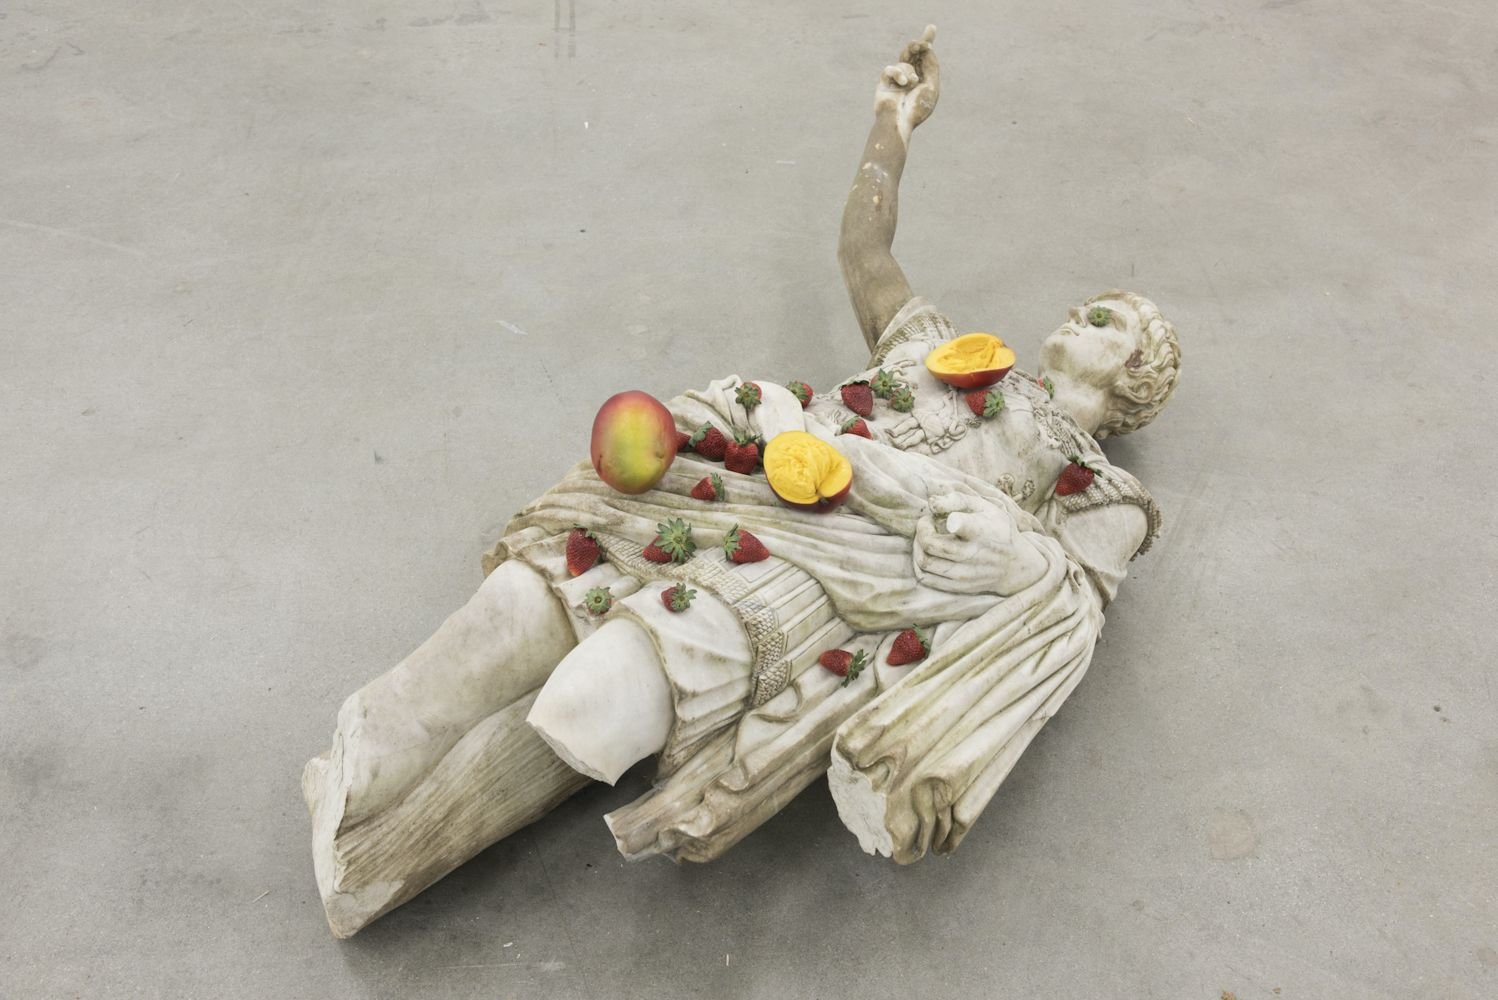 Hyper realistic sculpture by Tony Matelli of a sculpture of Julius Caesar on the ground with strawberries and sliced mangoes spread throughout